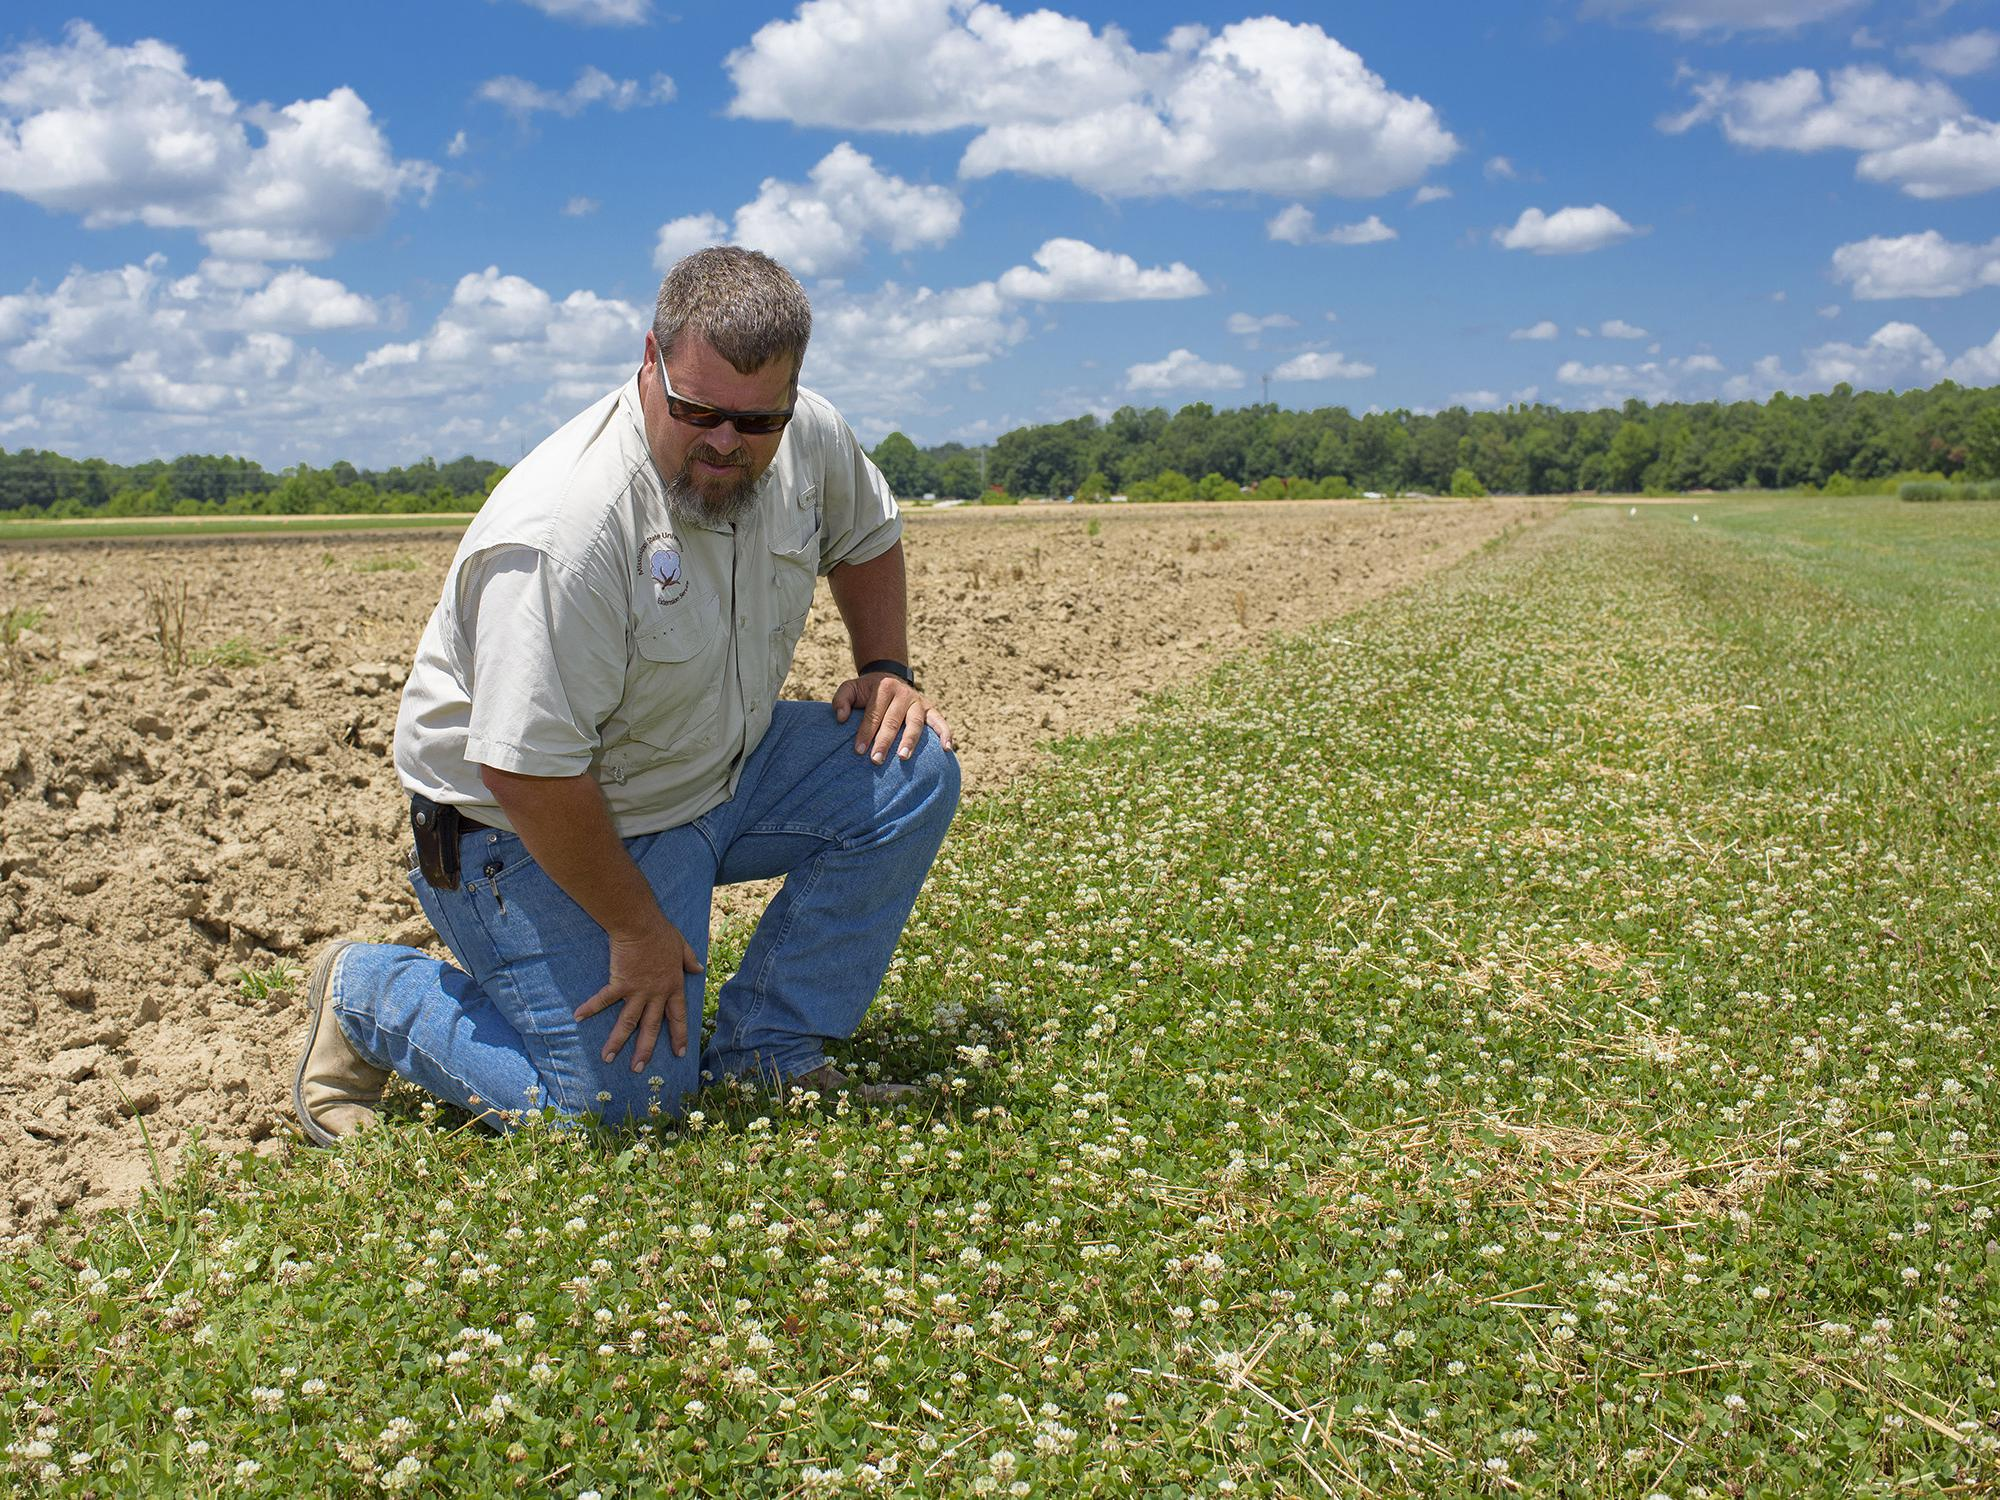 What looks like weeds to a farmer or landowner is forage for pollinators such as honeybees. Angus Catchot and other researchers at Mississippi State University are part of efforts to find management plans that balance competing needs. (Photo by MSU Extension Service/Kevin Hudson)